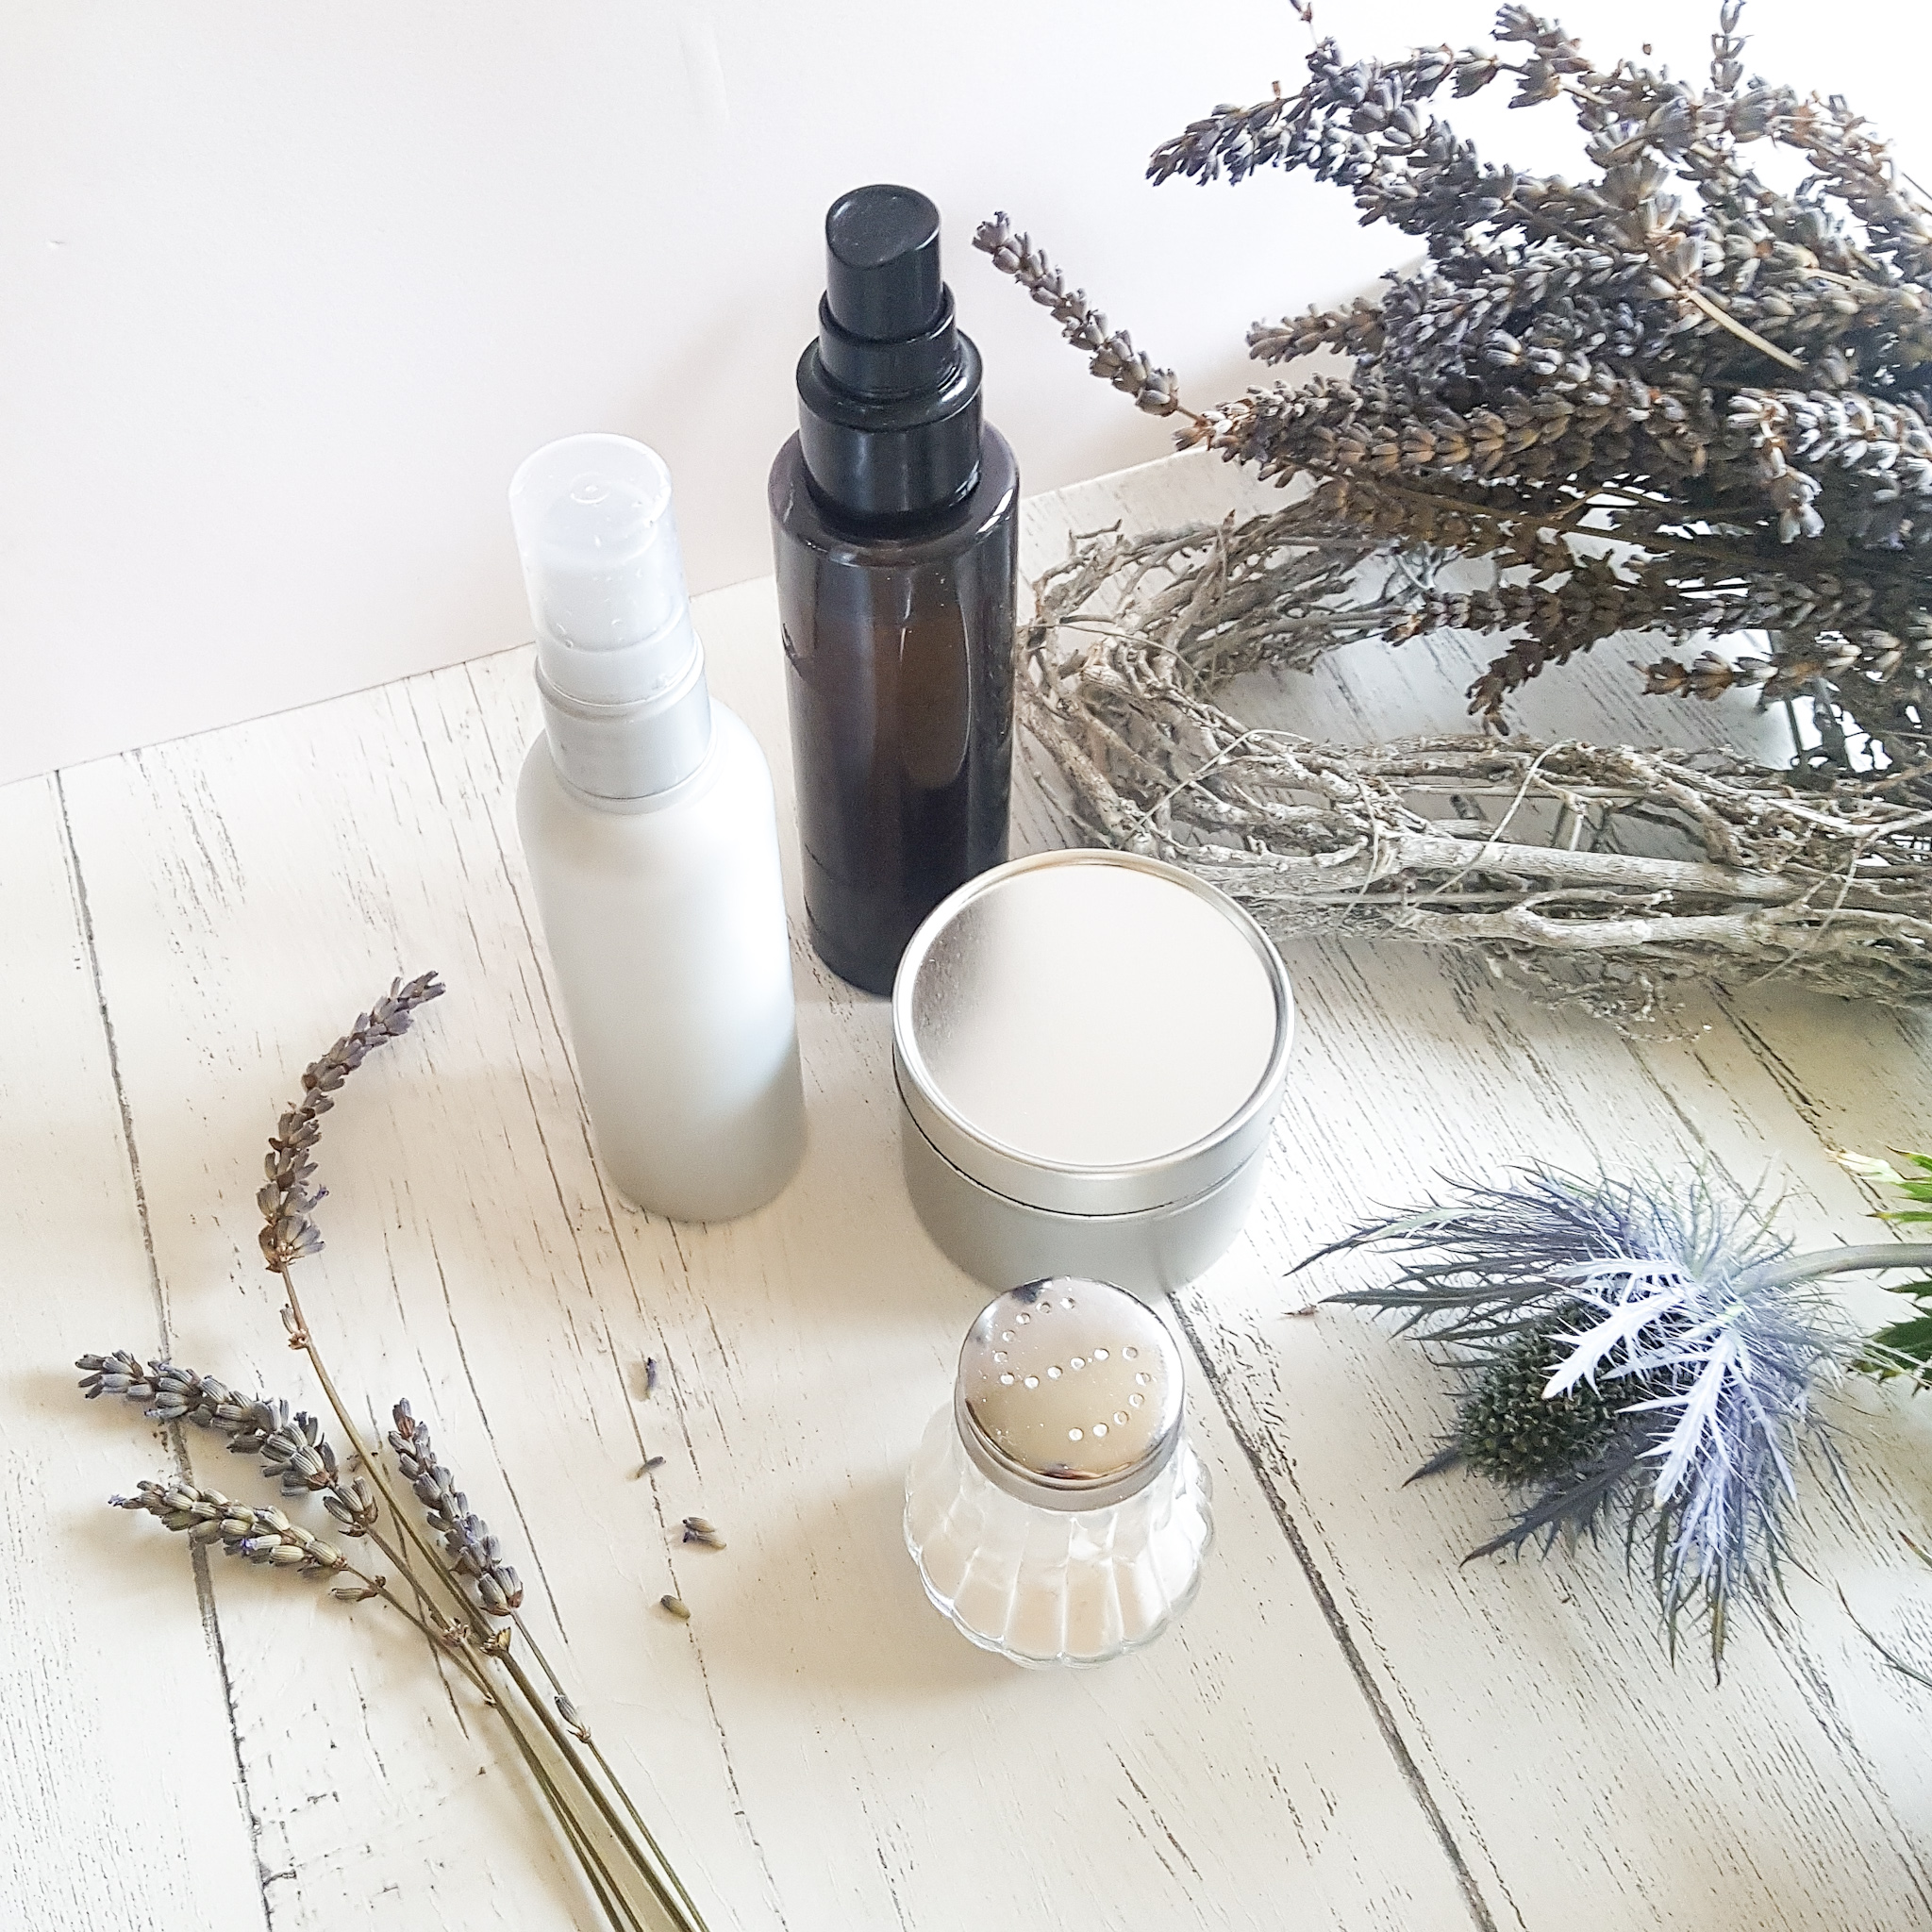 https://talilifestyle.com/2019/07/20/what-i-make-at-home